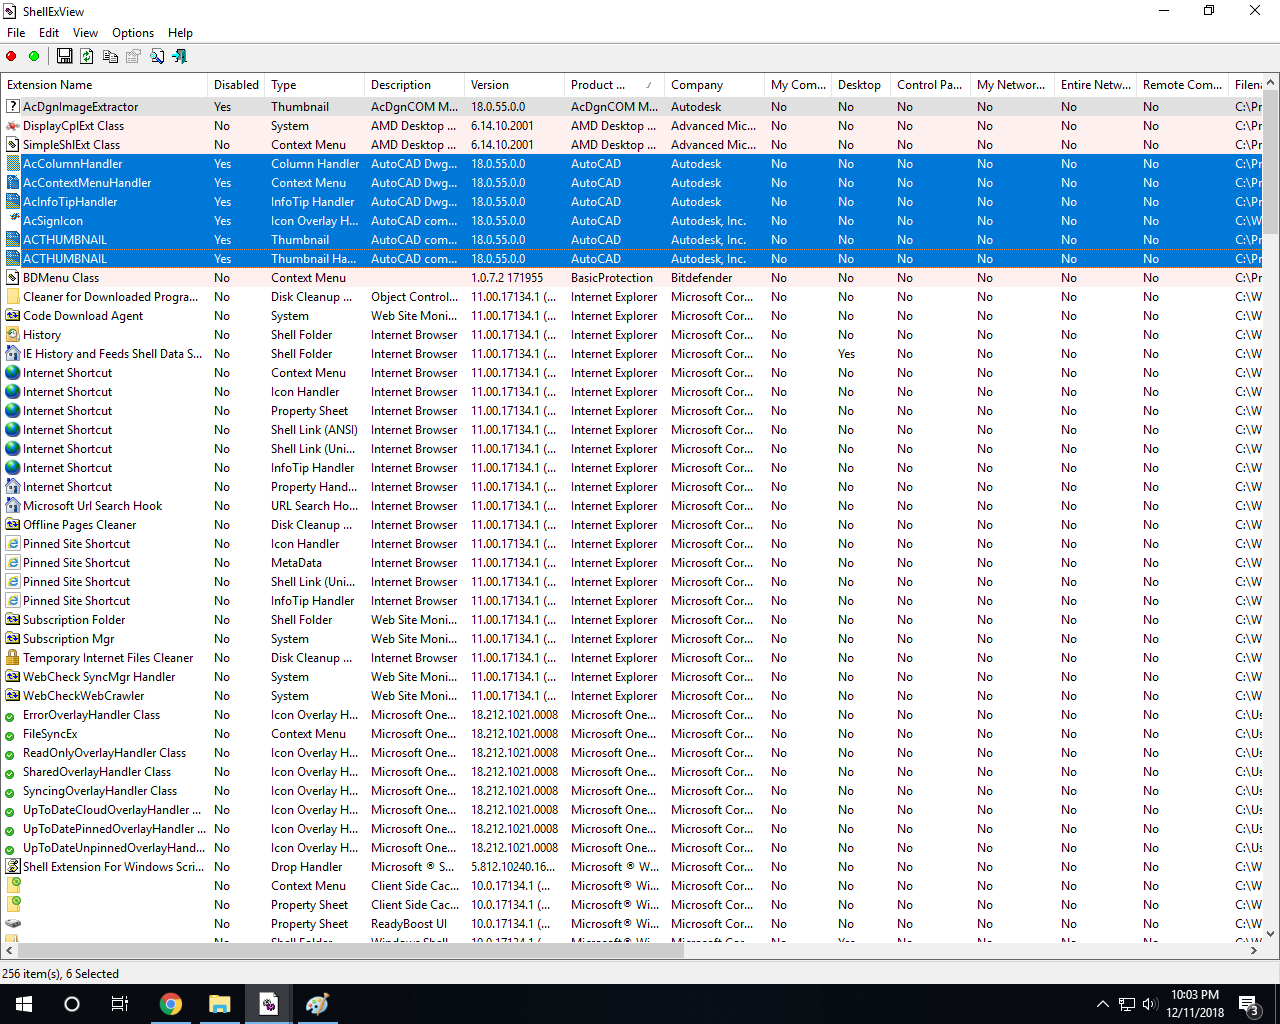 File Explorer crashes in Windows 10 when AutoCad is